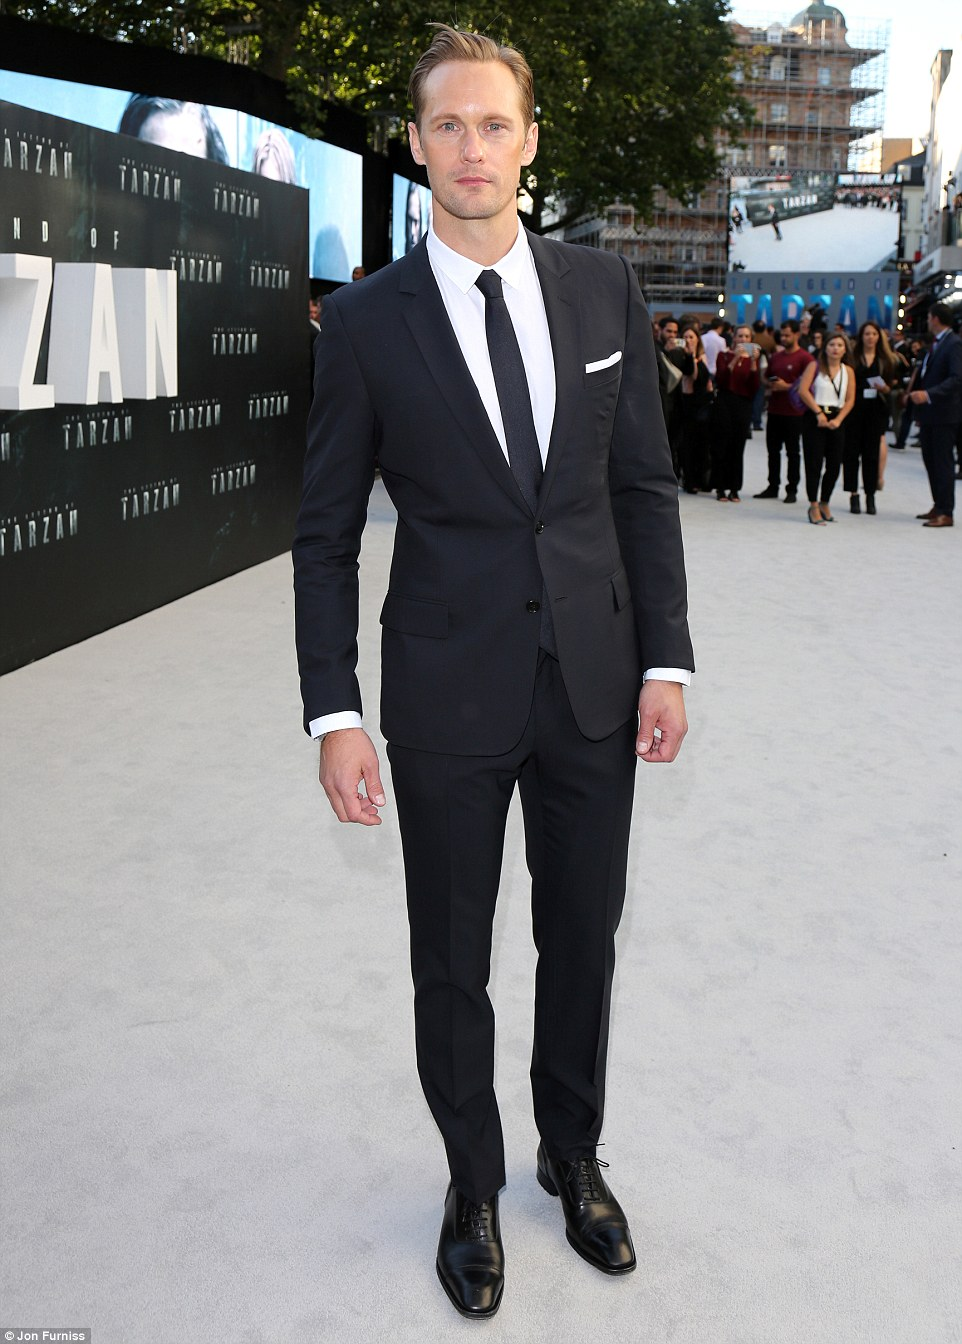 35FB738700000578-3675778-Dapper_gent_Alexander_looked_the_epitome_of_a_Hollywood_leading_-m-149_1467743711982